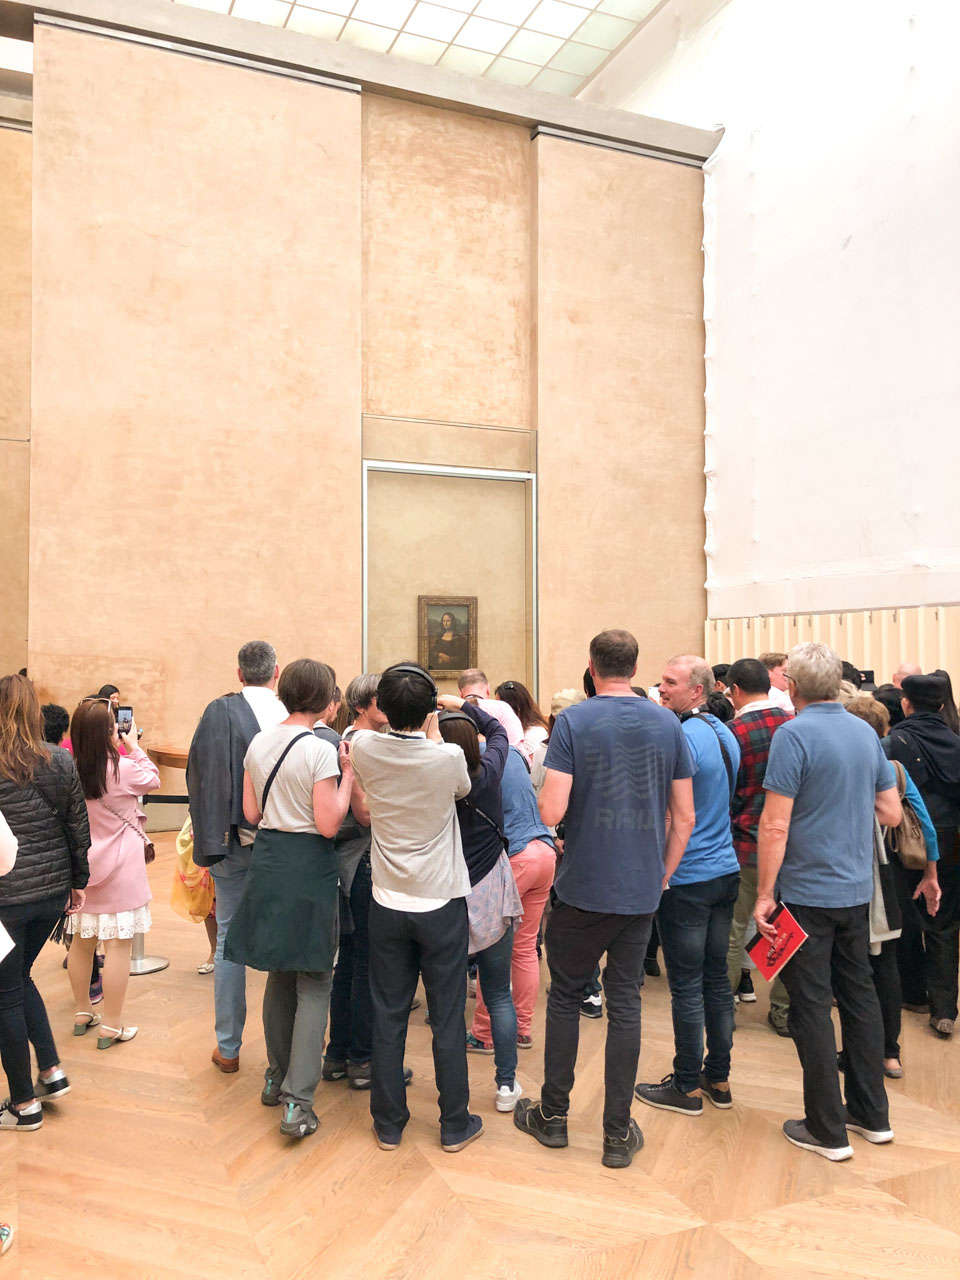 Crowds of people gathered around the Mona Lisa painting by Leonardo da Vinci at the Louvre, looking at and taking photos of the painting